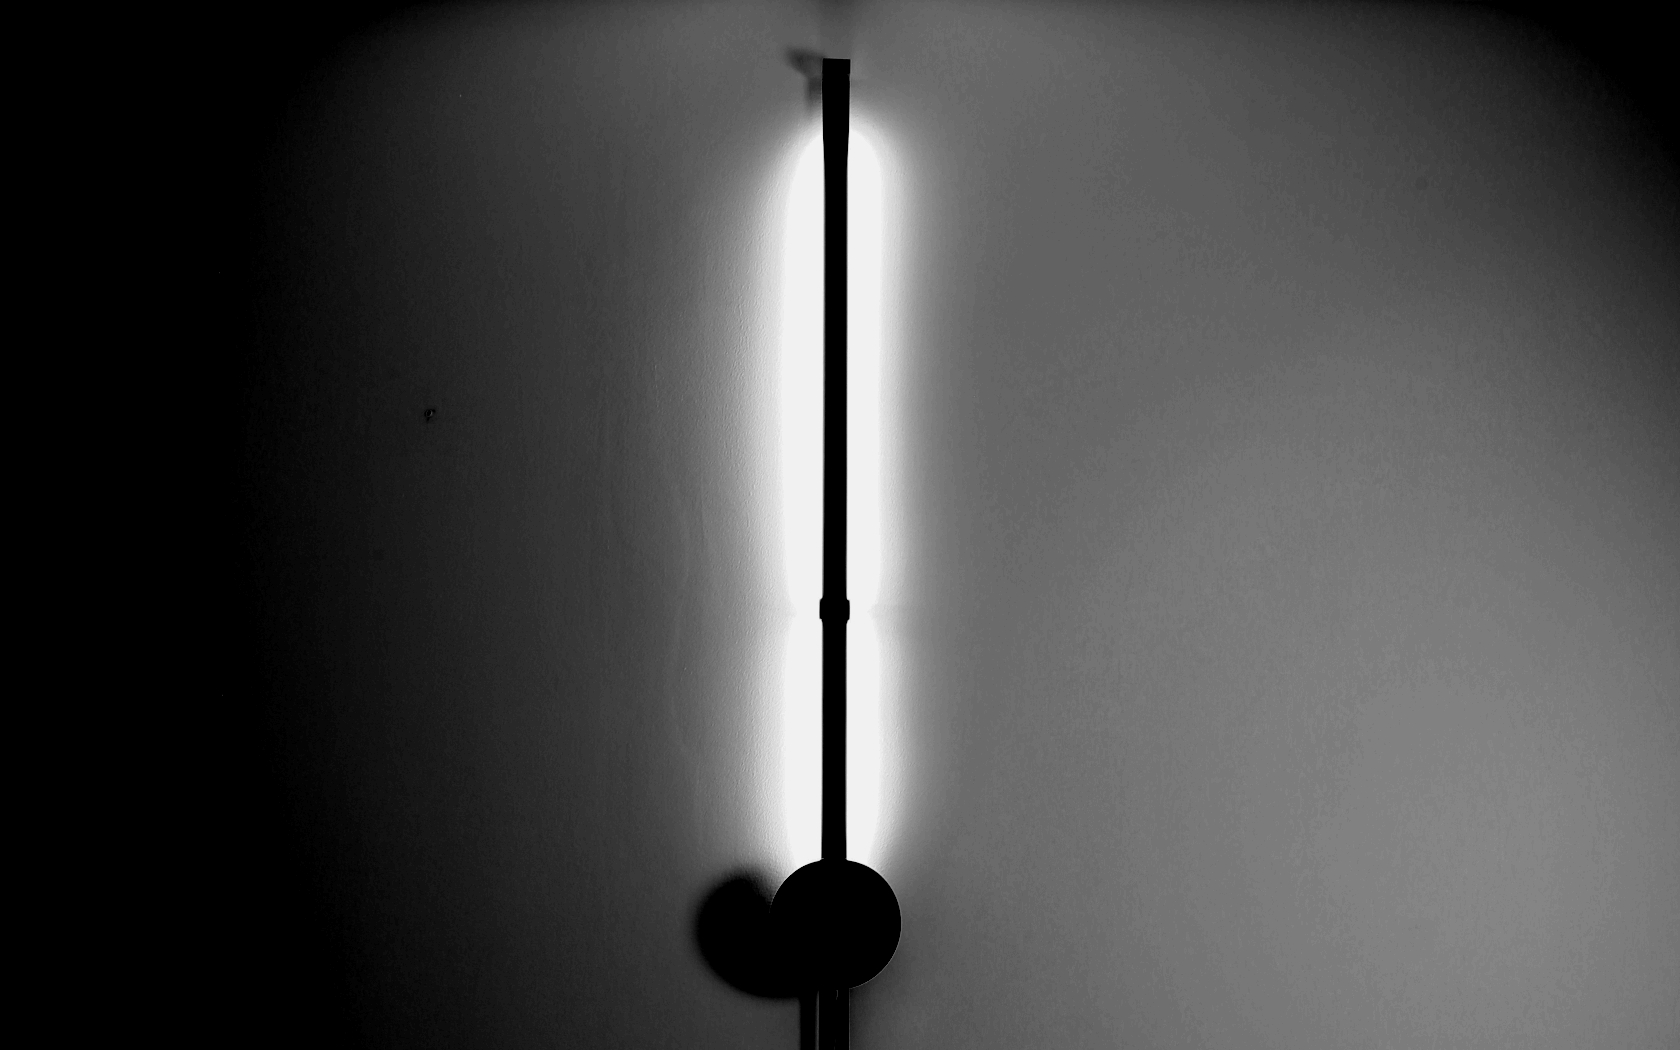 wall lamp for interior spaces